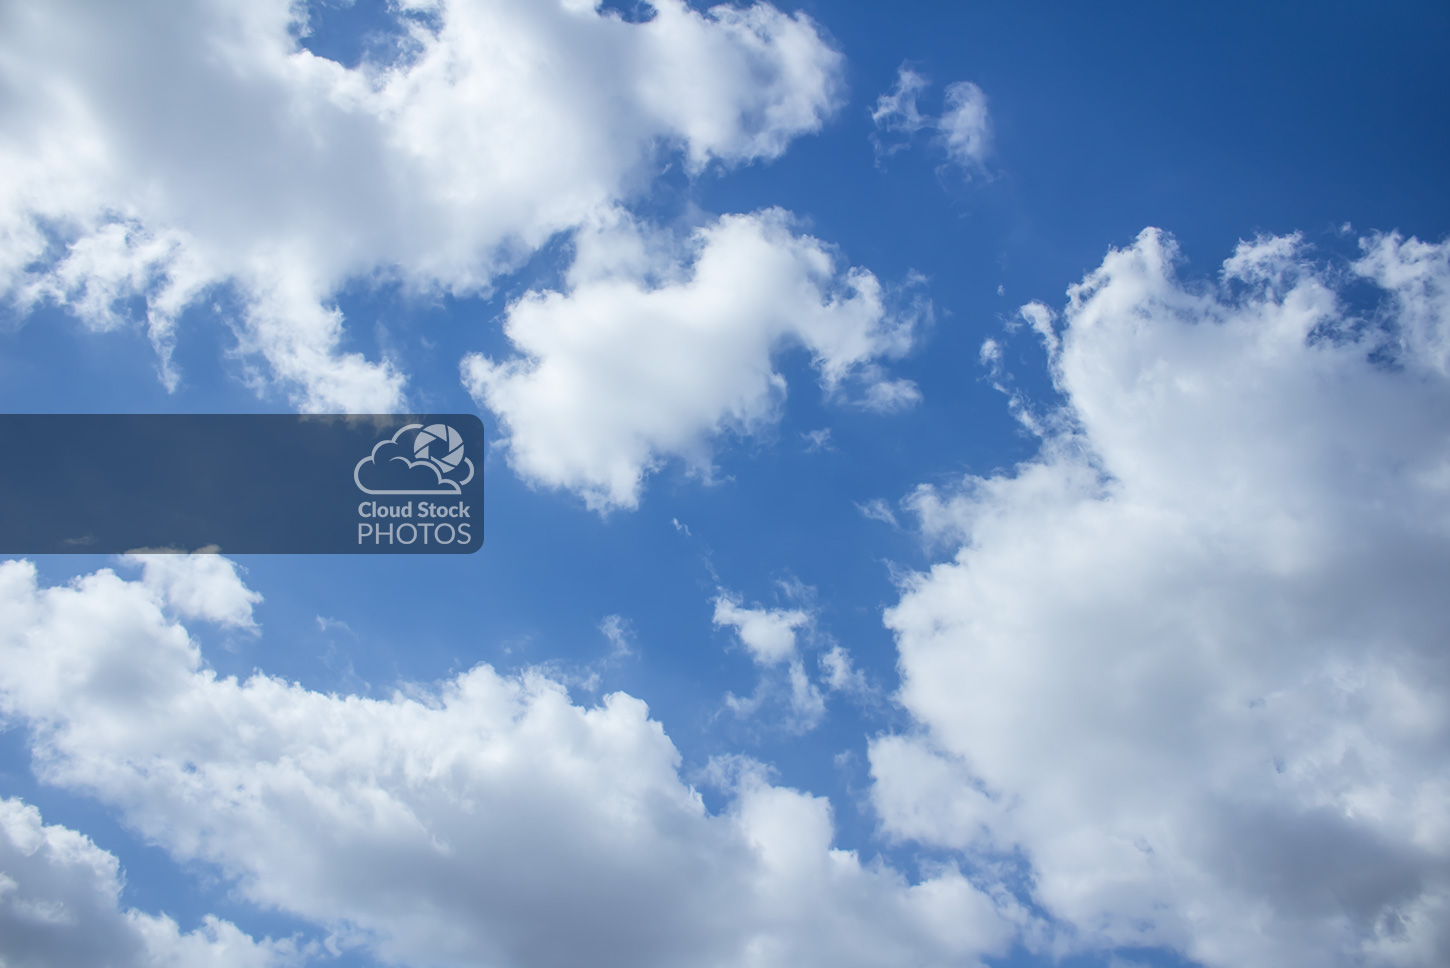 Stock image of a huge cumulus storm clouds that are bright white and gray. Behind the puffy clouds is a bright blue sky across the middle and top-right corner of the image.